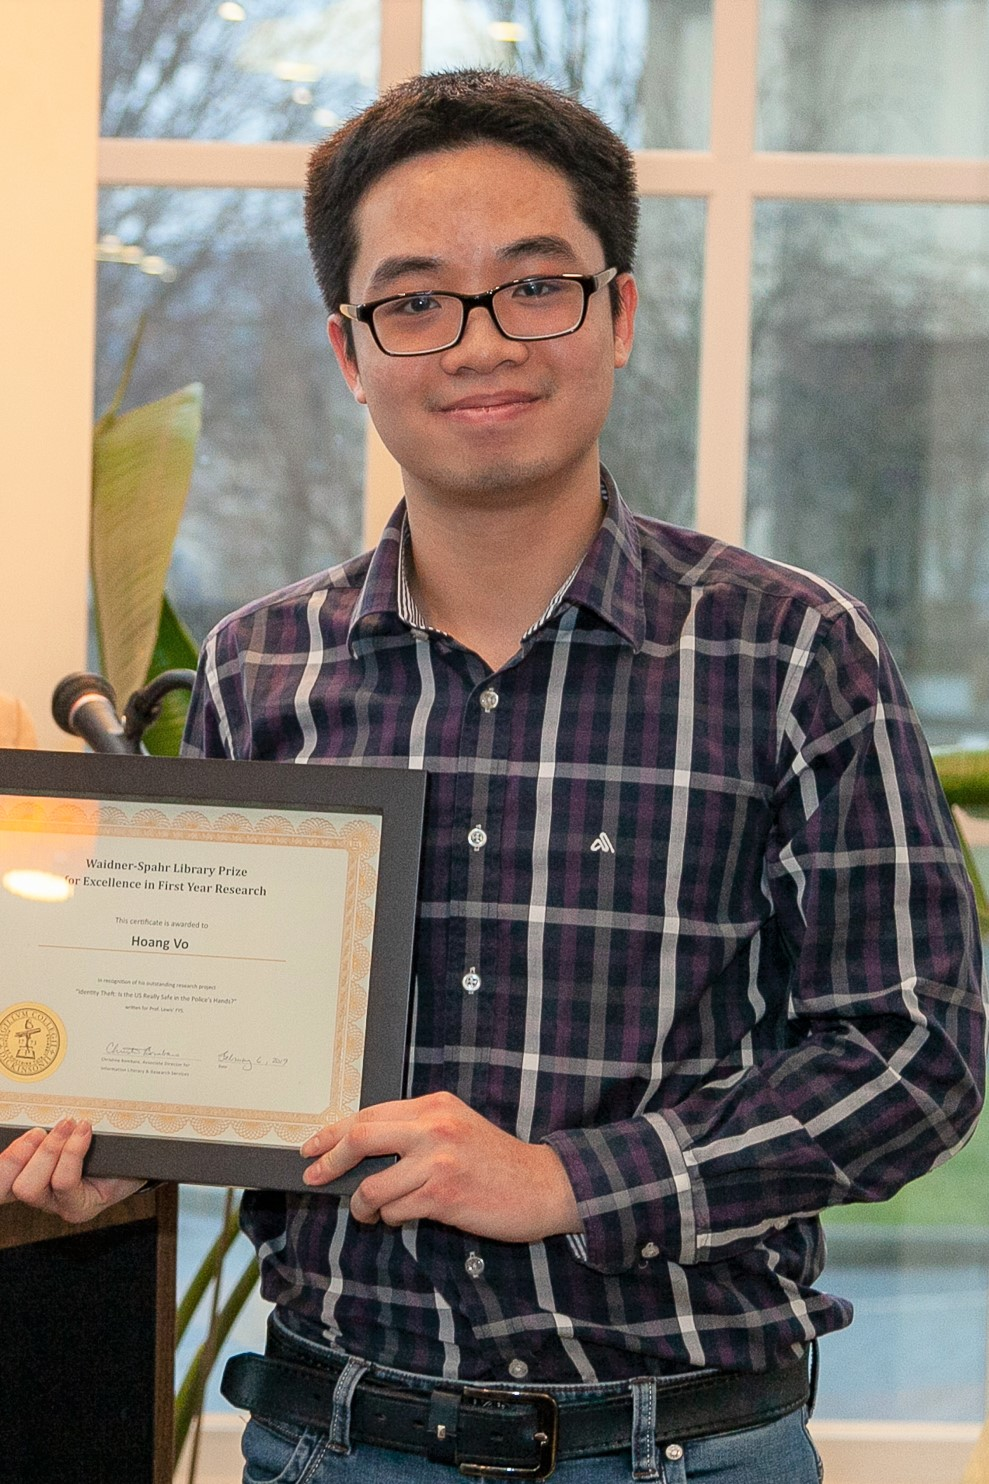 Hoang Vo with his certificate